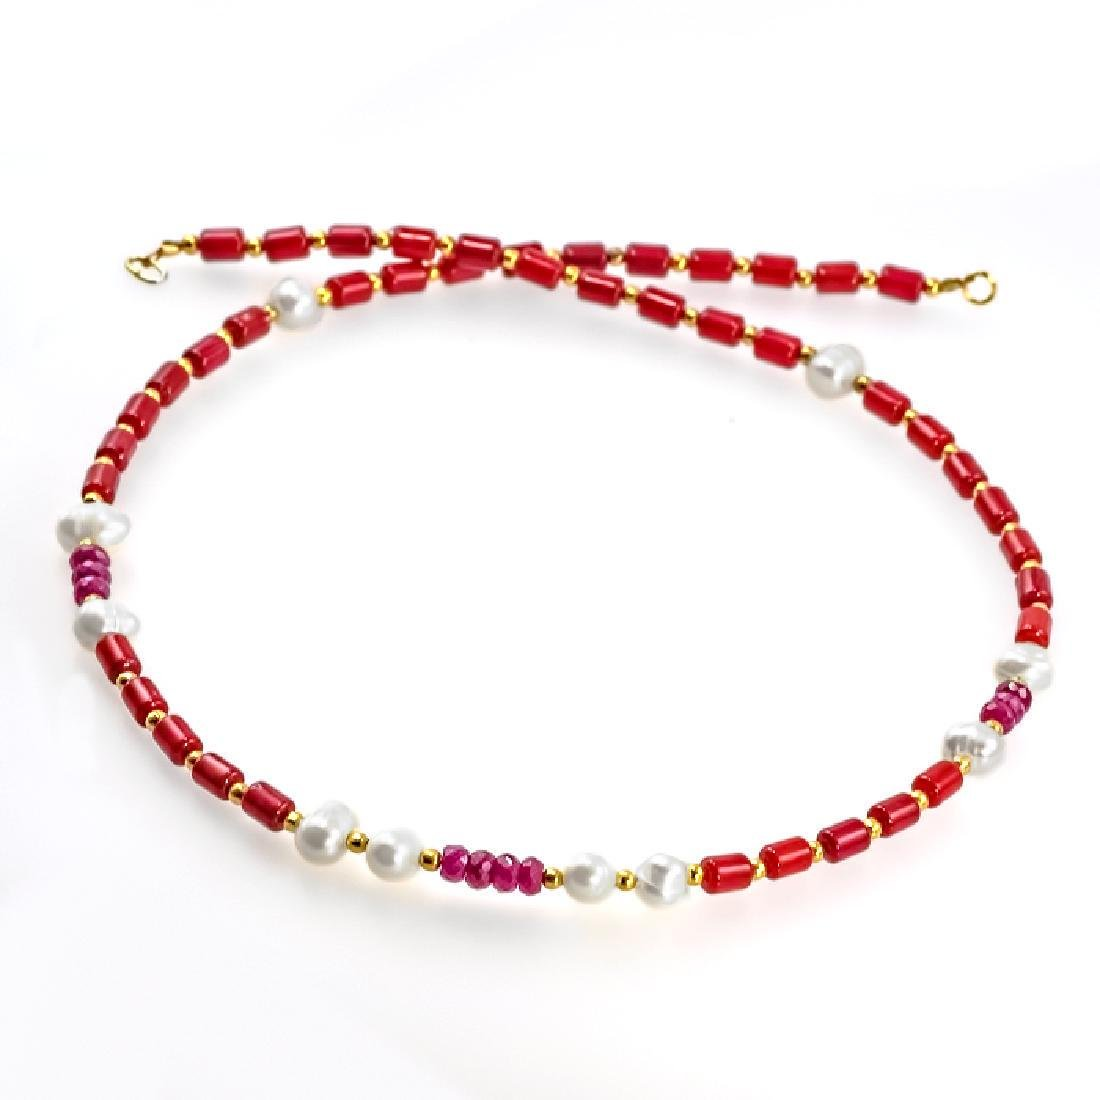 Coral Necklace with Pearls and Rubies 9.8ctw - 3